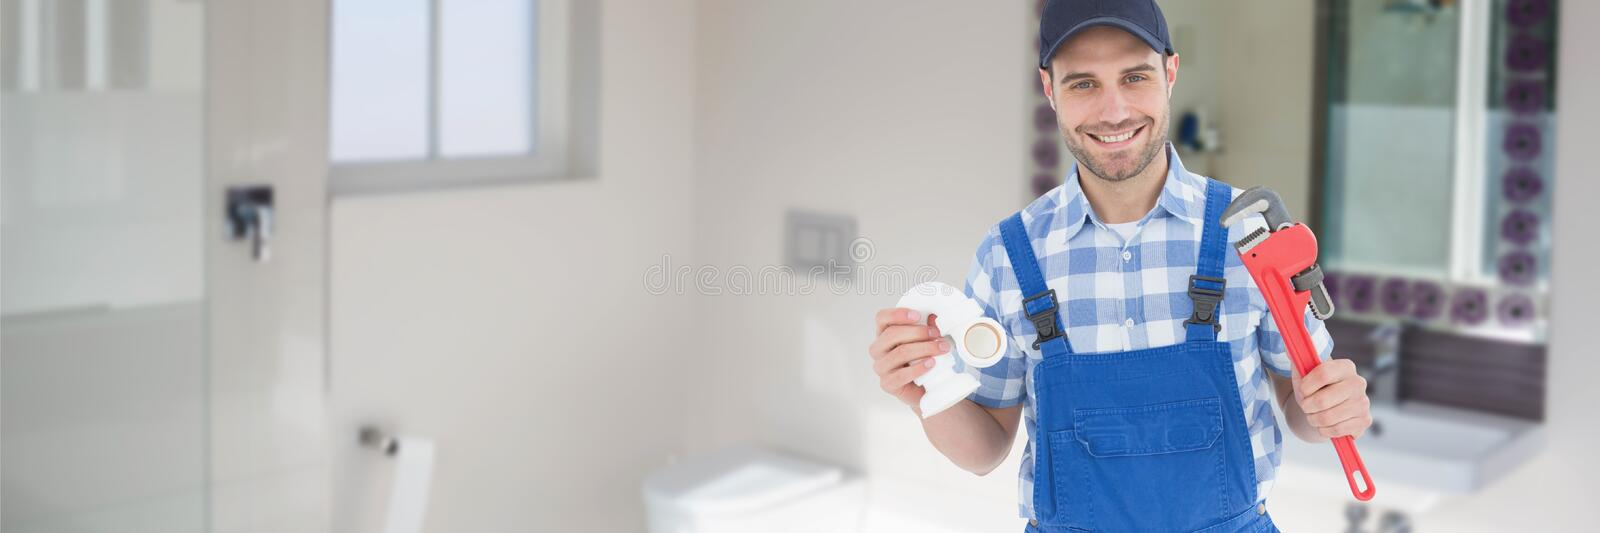 Happy plumber man holding a plunger and a wrench. Digital composite of Happy plumber man holding a plunger and a wrench royalty free stock image